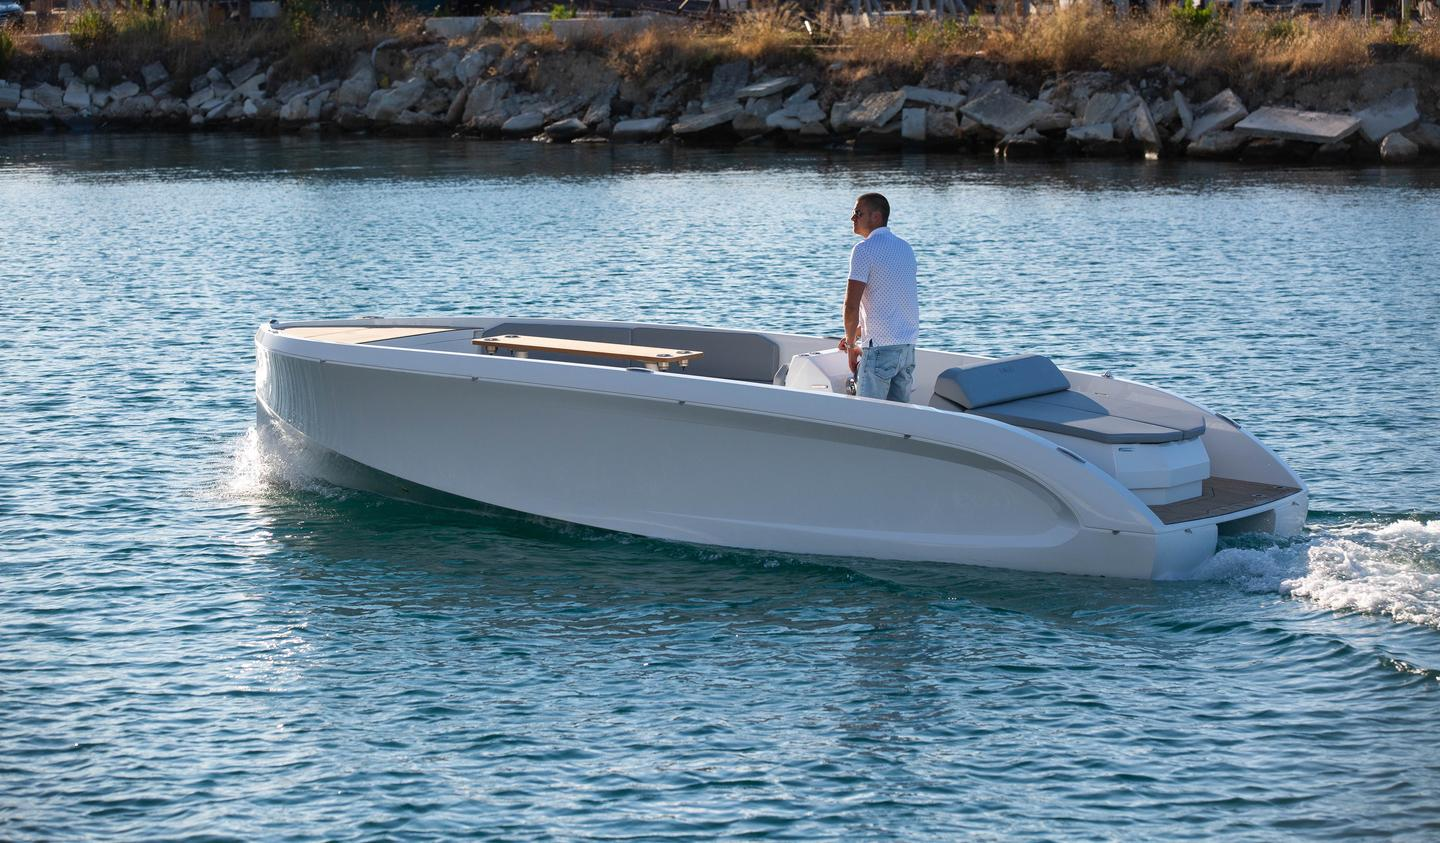 The Mana 23 is capable of displacement cruising at up to 15 knots